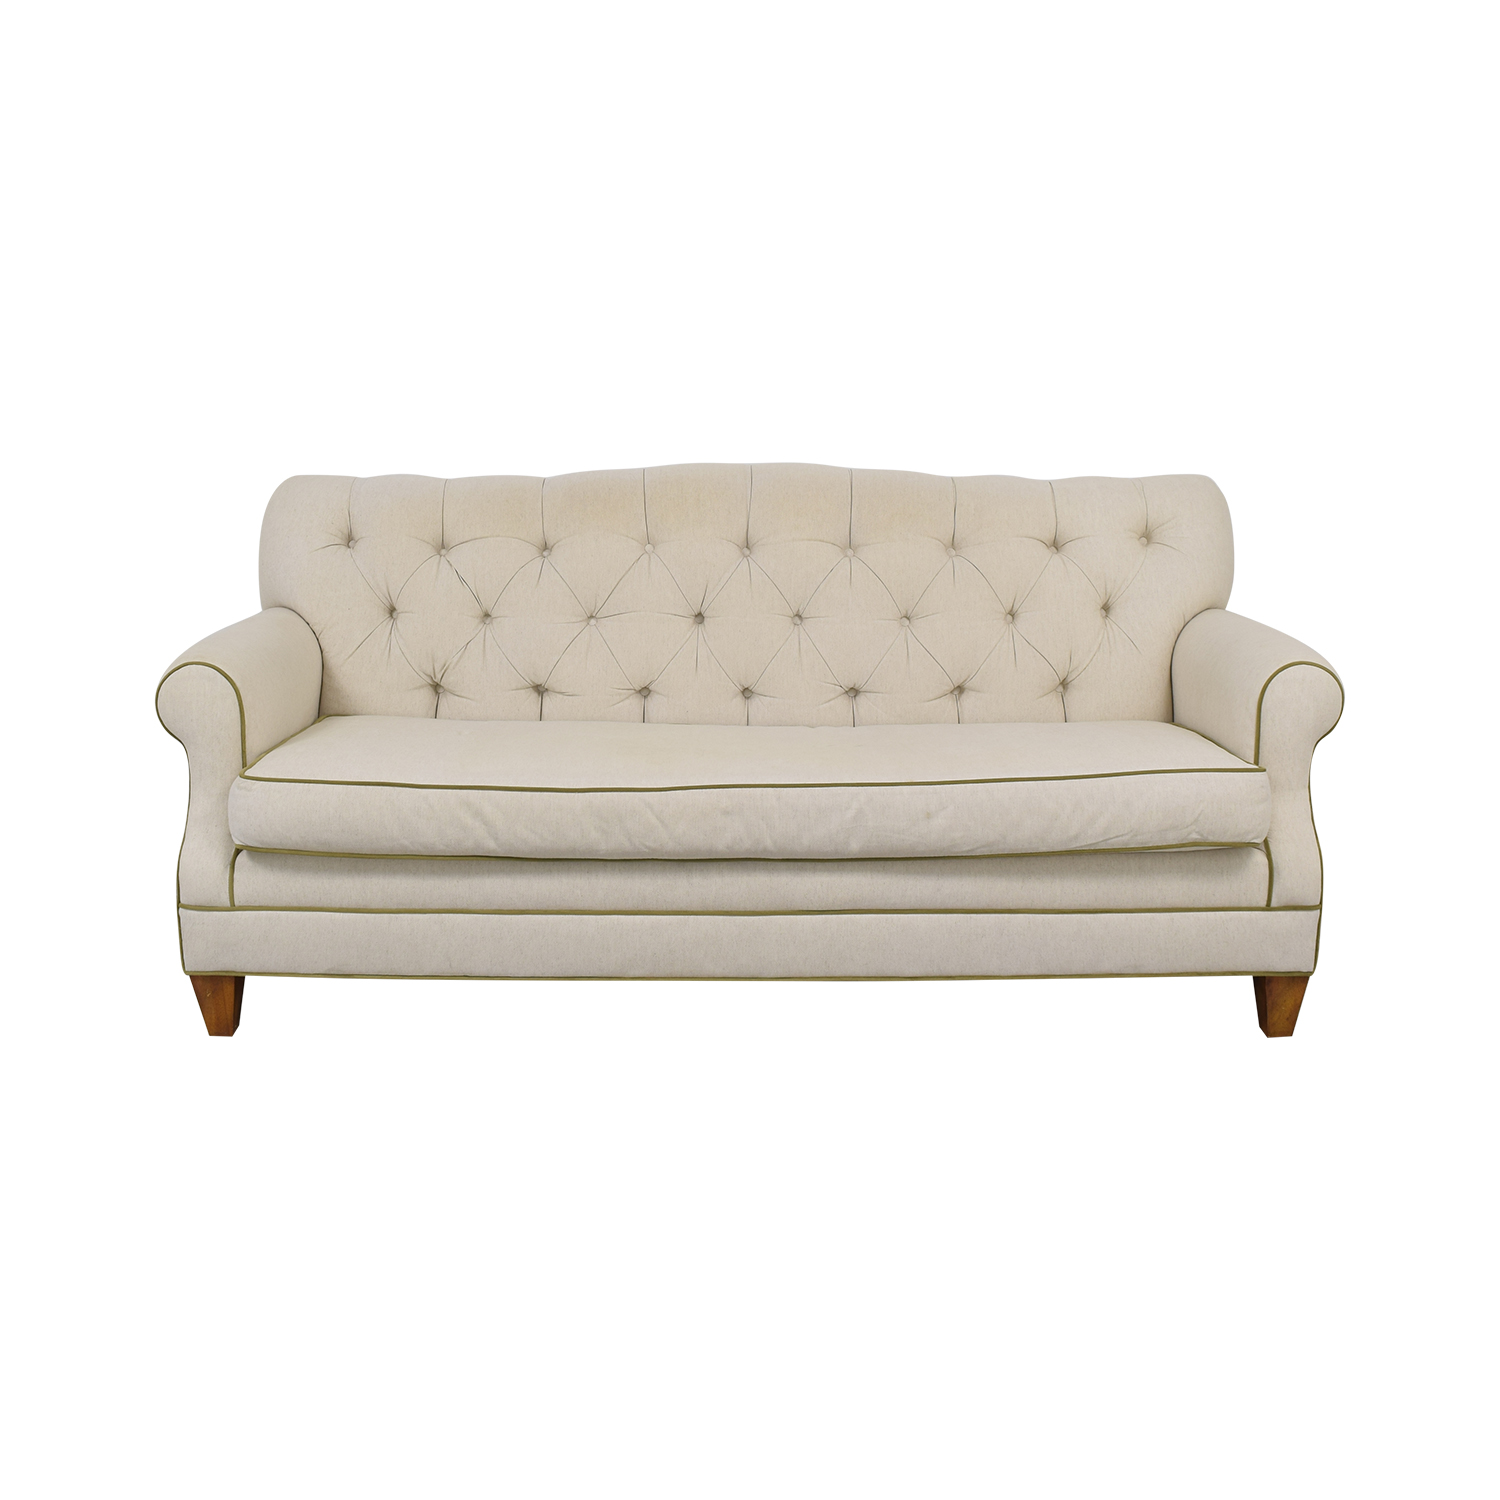 Key City Furniture Ricci Tufted Sofa